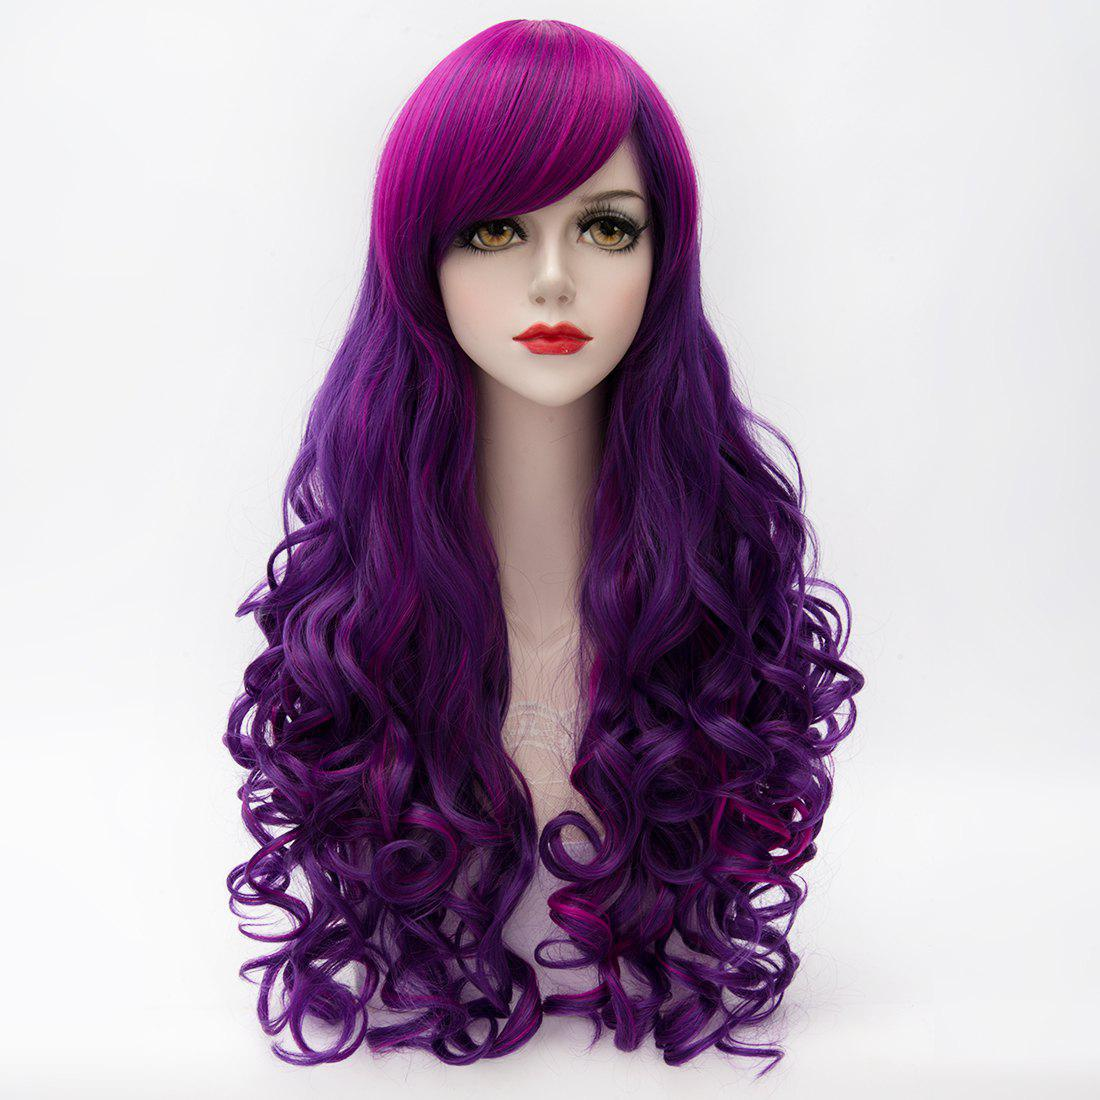 Fluffy bouclés longue Charme Inclined Bang capless Highlight Violet synthétique cosplay perruque de la femme - multicolore